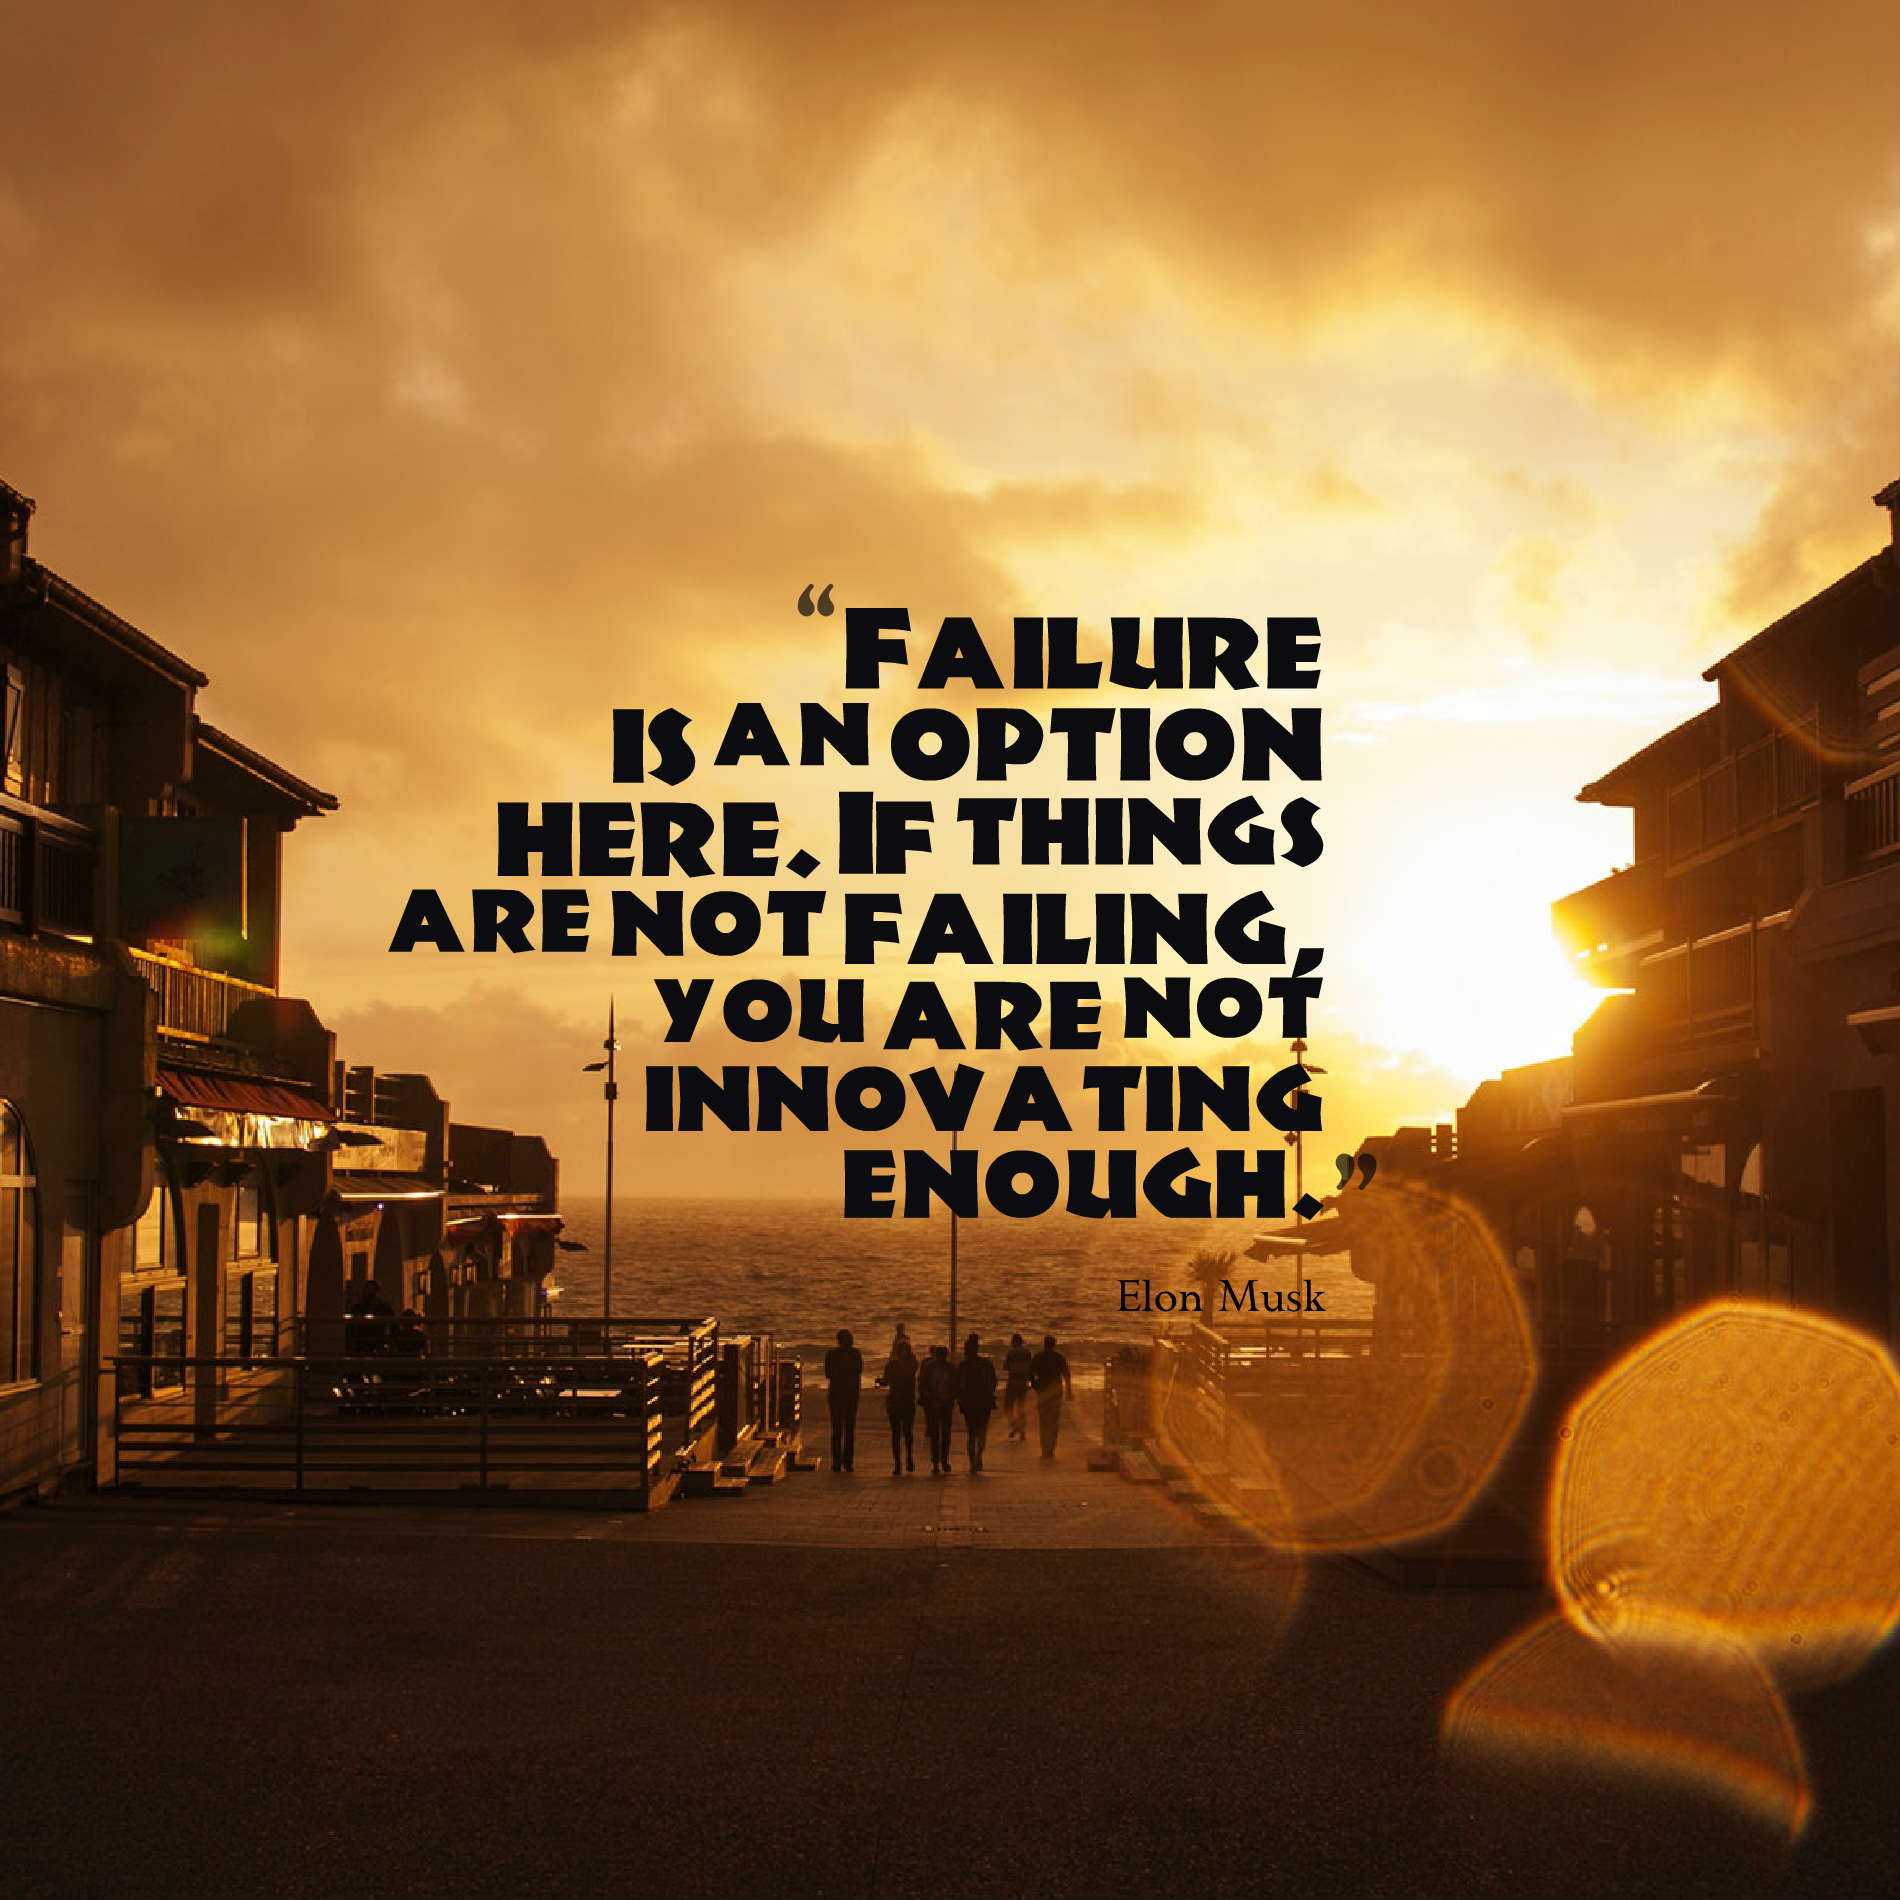 Quotes image of Failure is an option here. If things are not failing, you are not innovating enough.